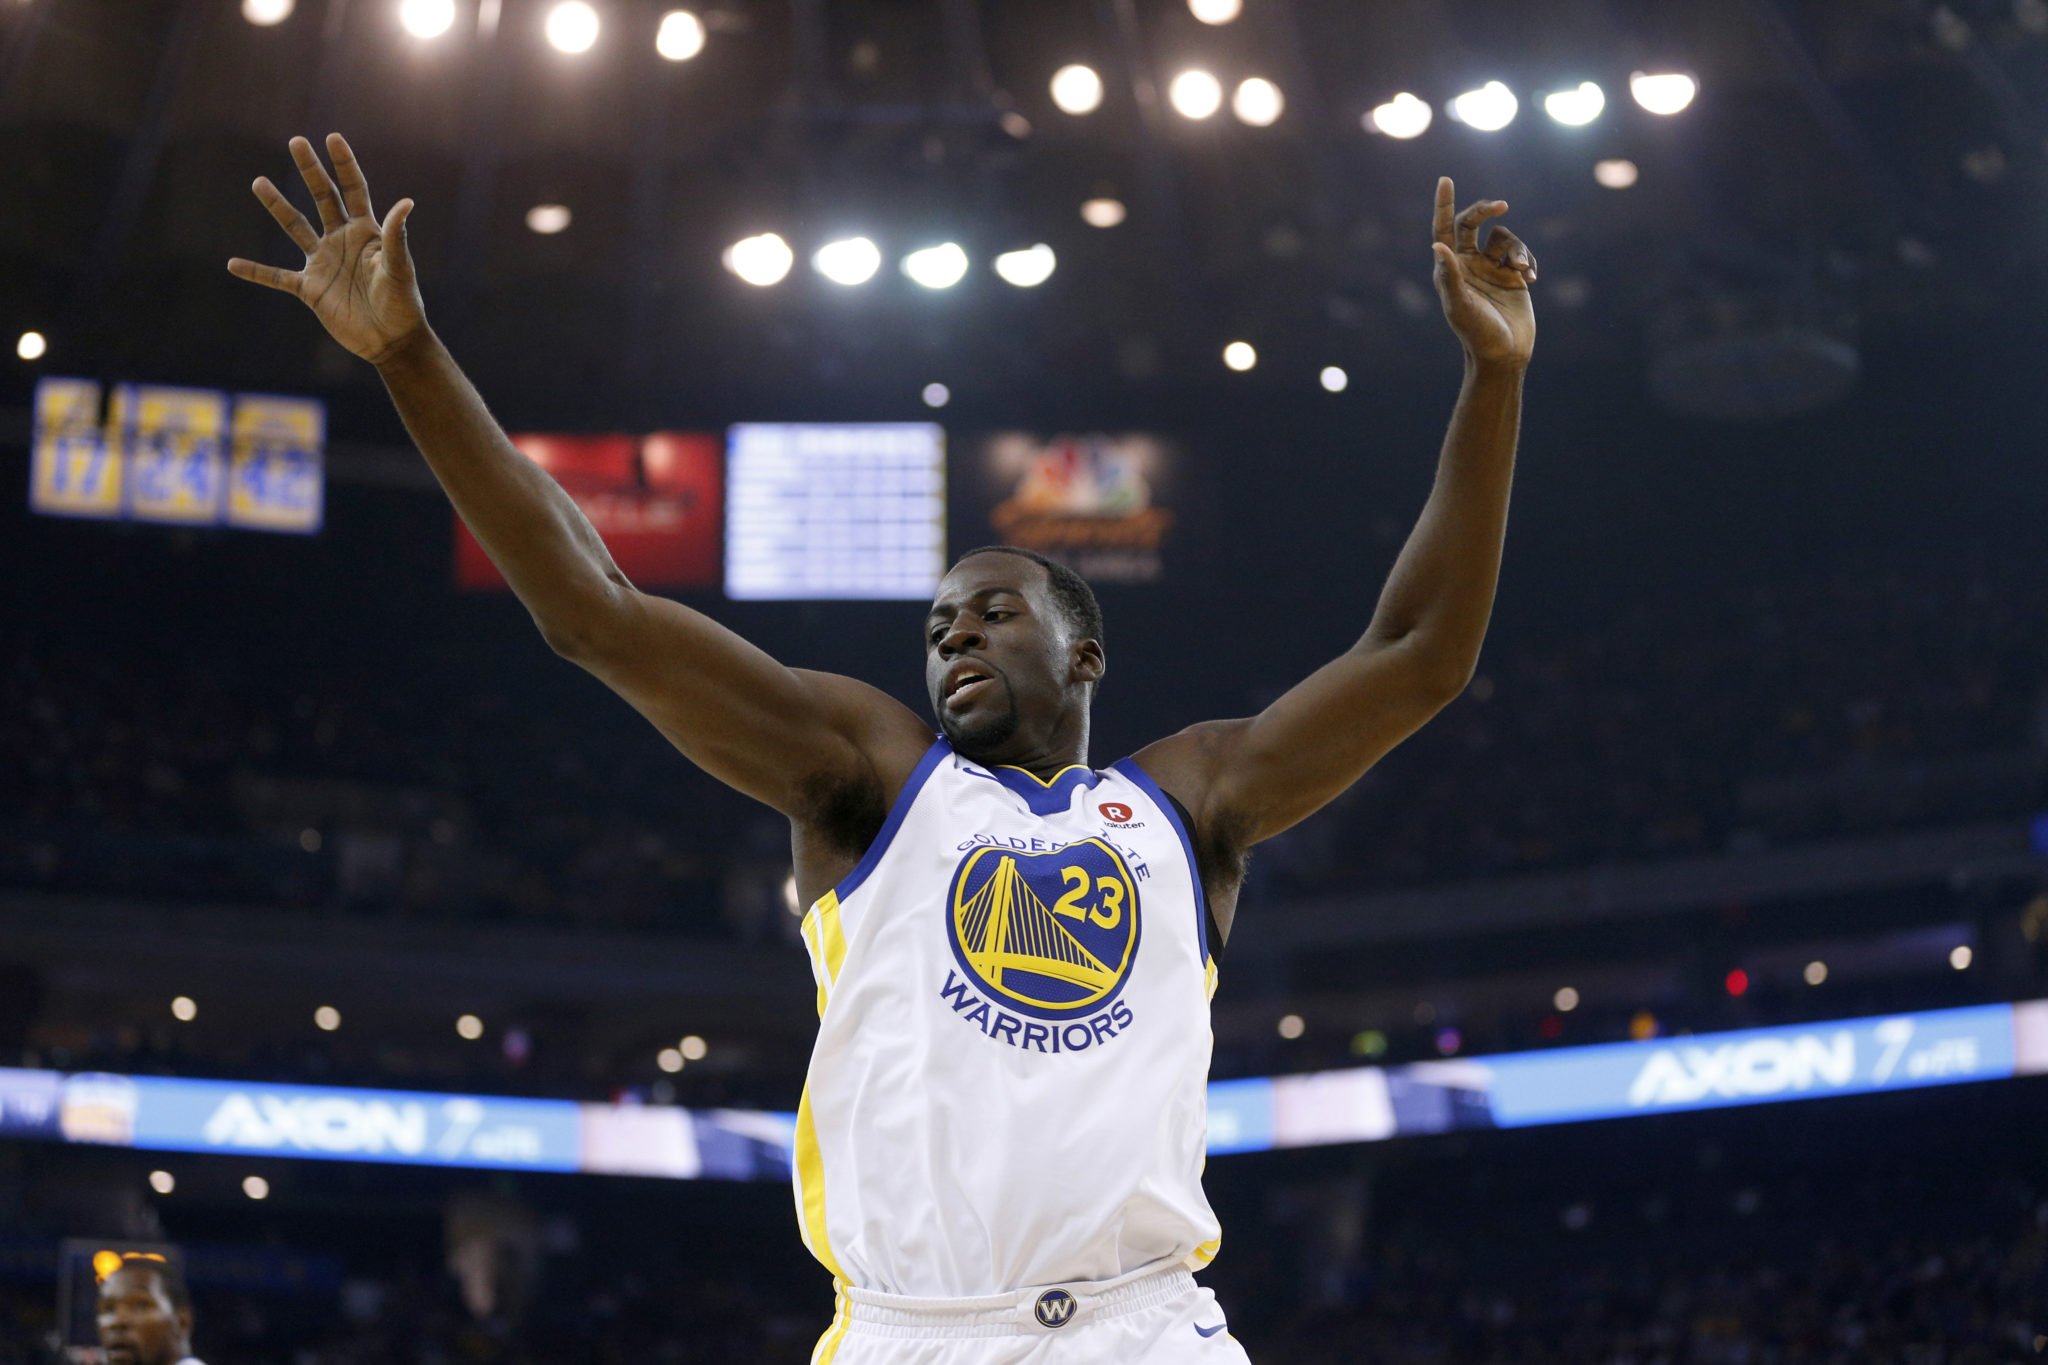 Warriors forward's MRI exam on knee negative